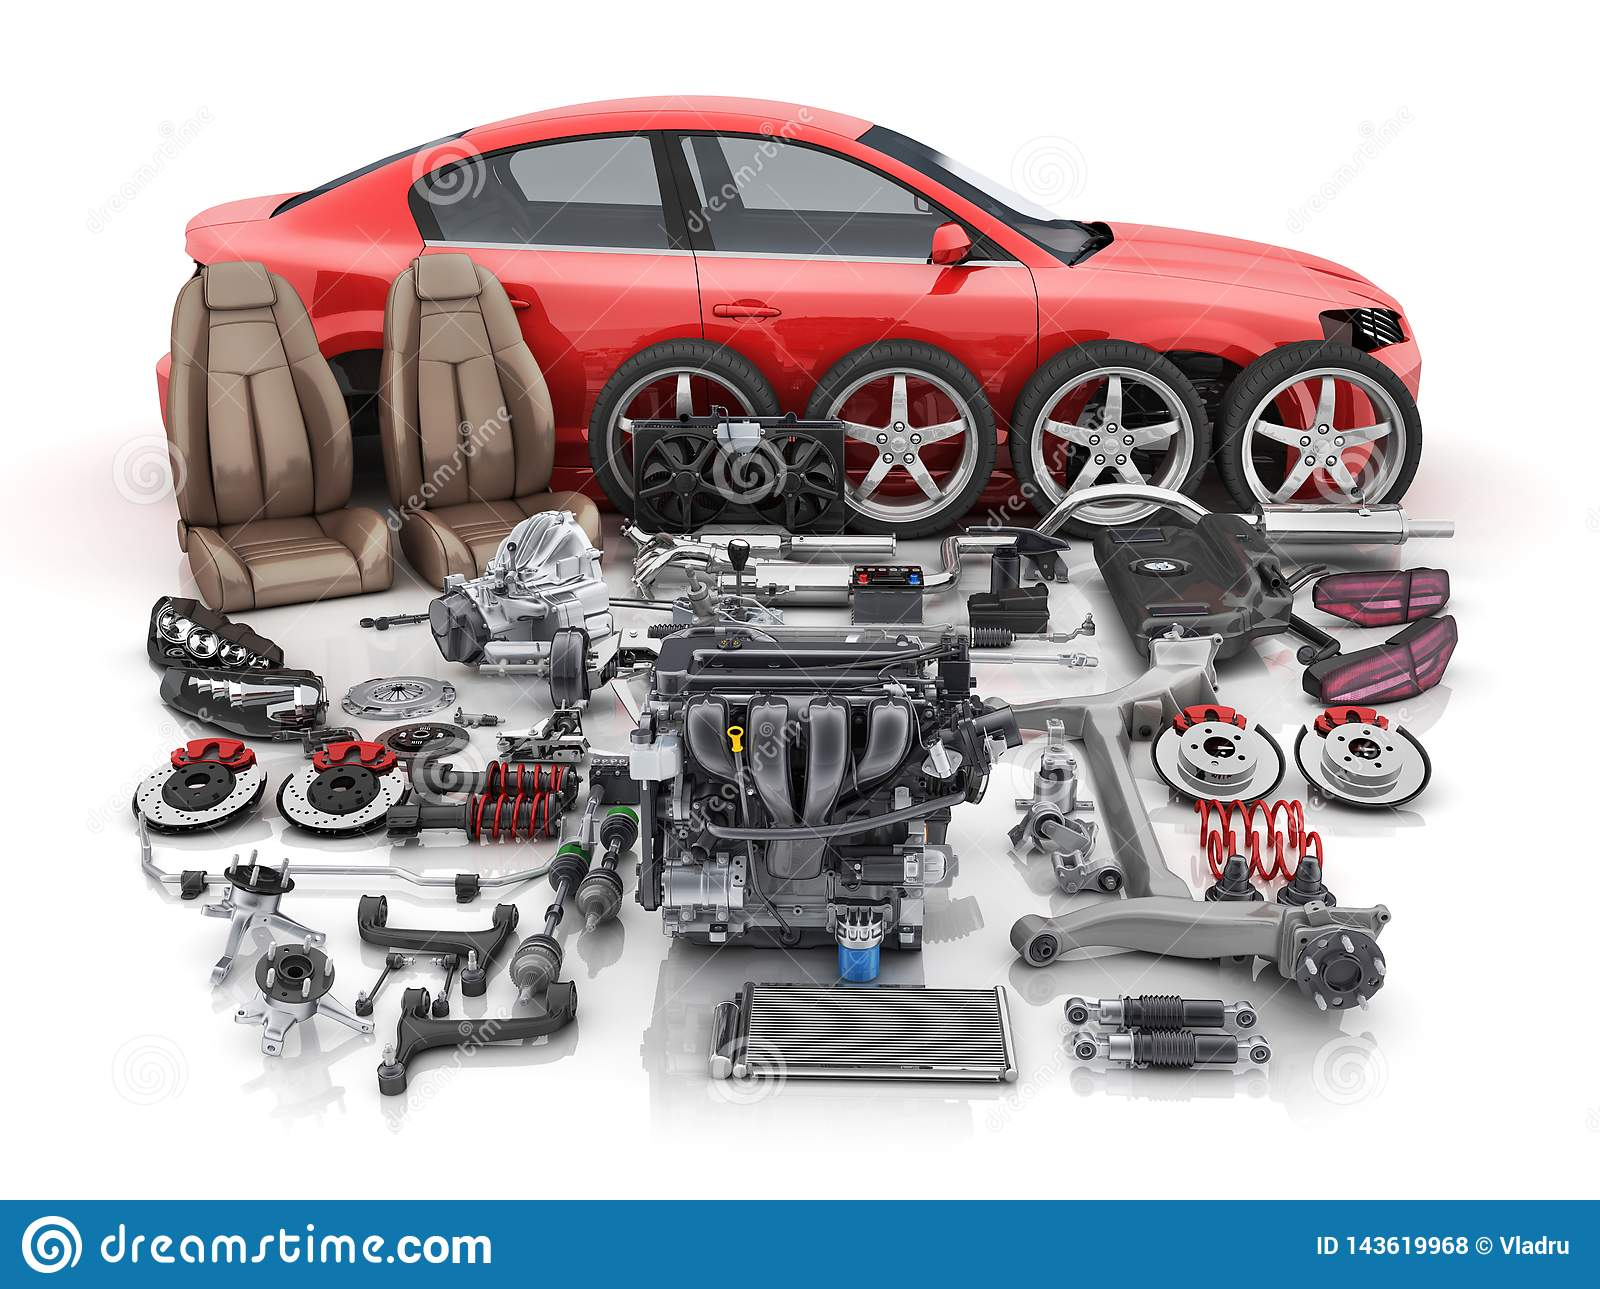 Car Body Parts >> Red Car Body Disassembled And Many Vehicles Parts Stock